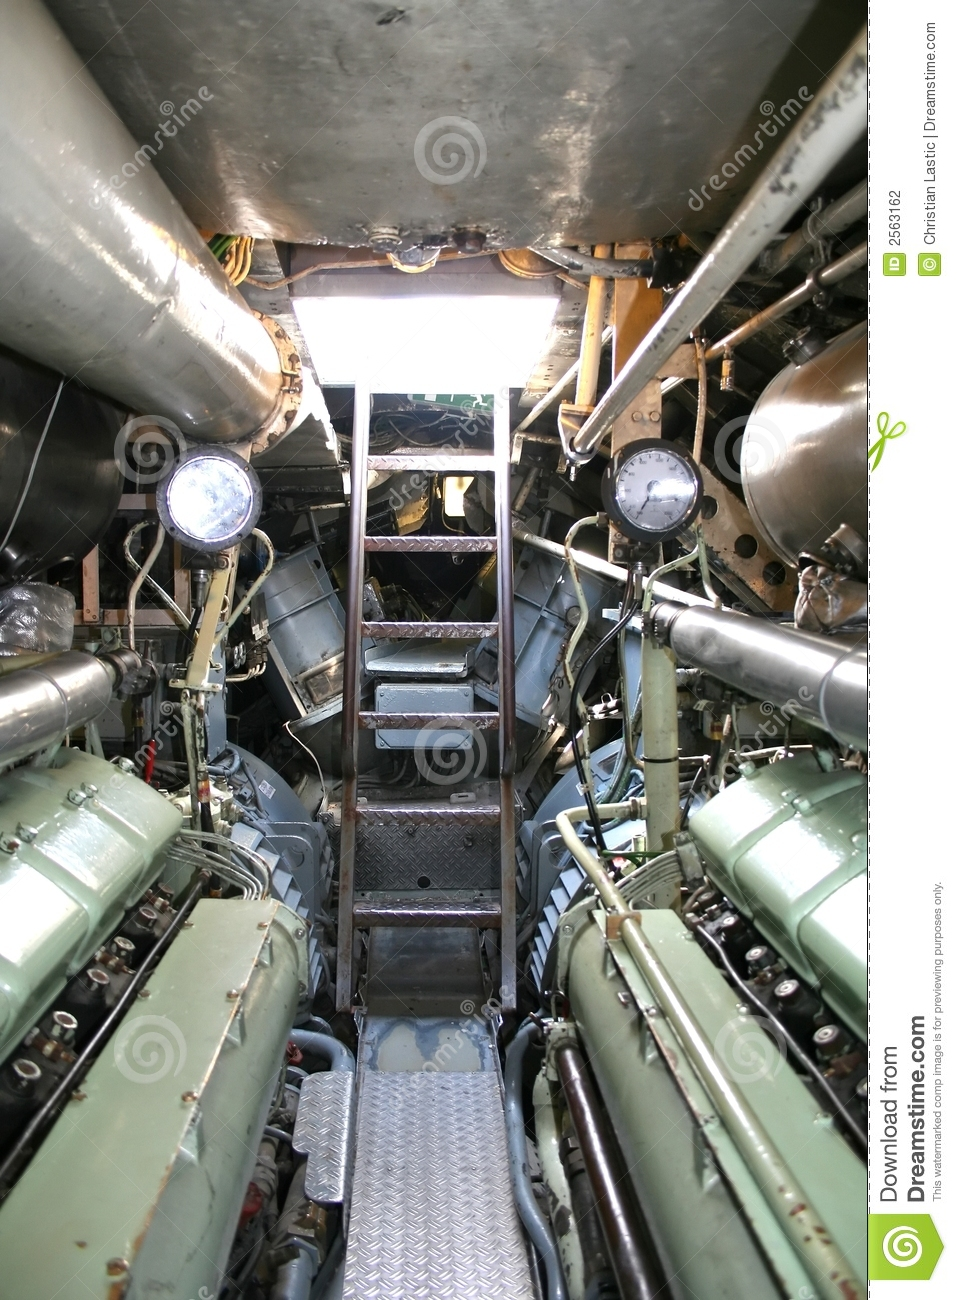 Sous marin allemand int rieur photo stock image du for Interieur sous marin